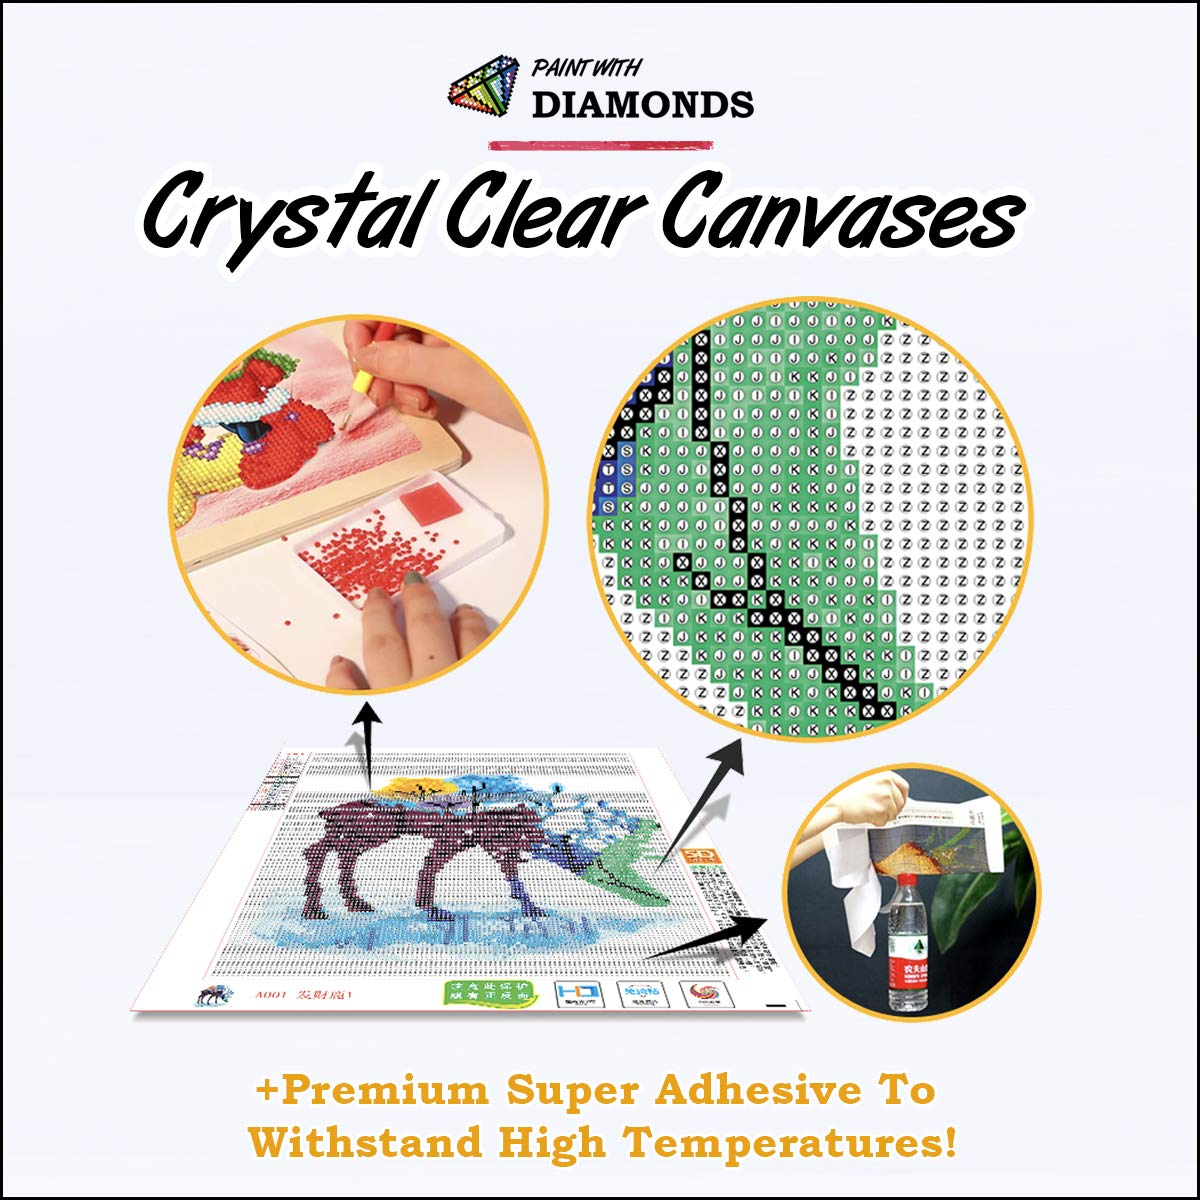 Diamond Painting Kits for Adults by Paint With Diamonds XL 60x40cm 'Eagle's Cry' Full Canvas Square Diamonds (Plus Free Premium Diamond Pen) by Paint With Diamonds (Image #4)